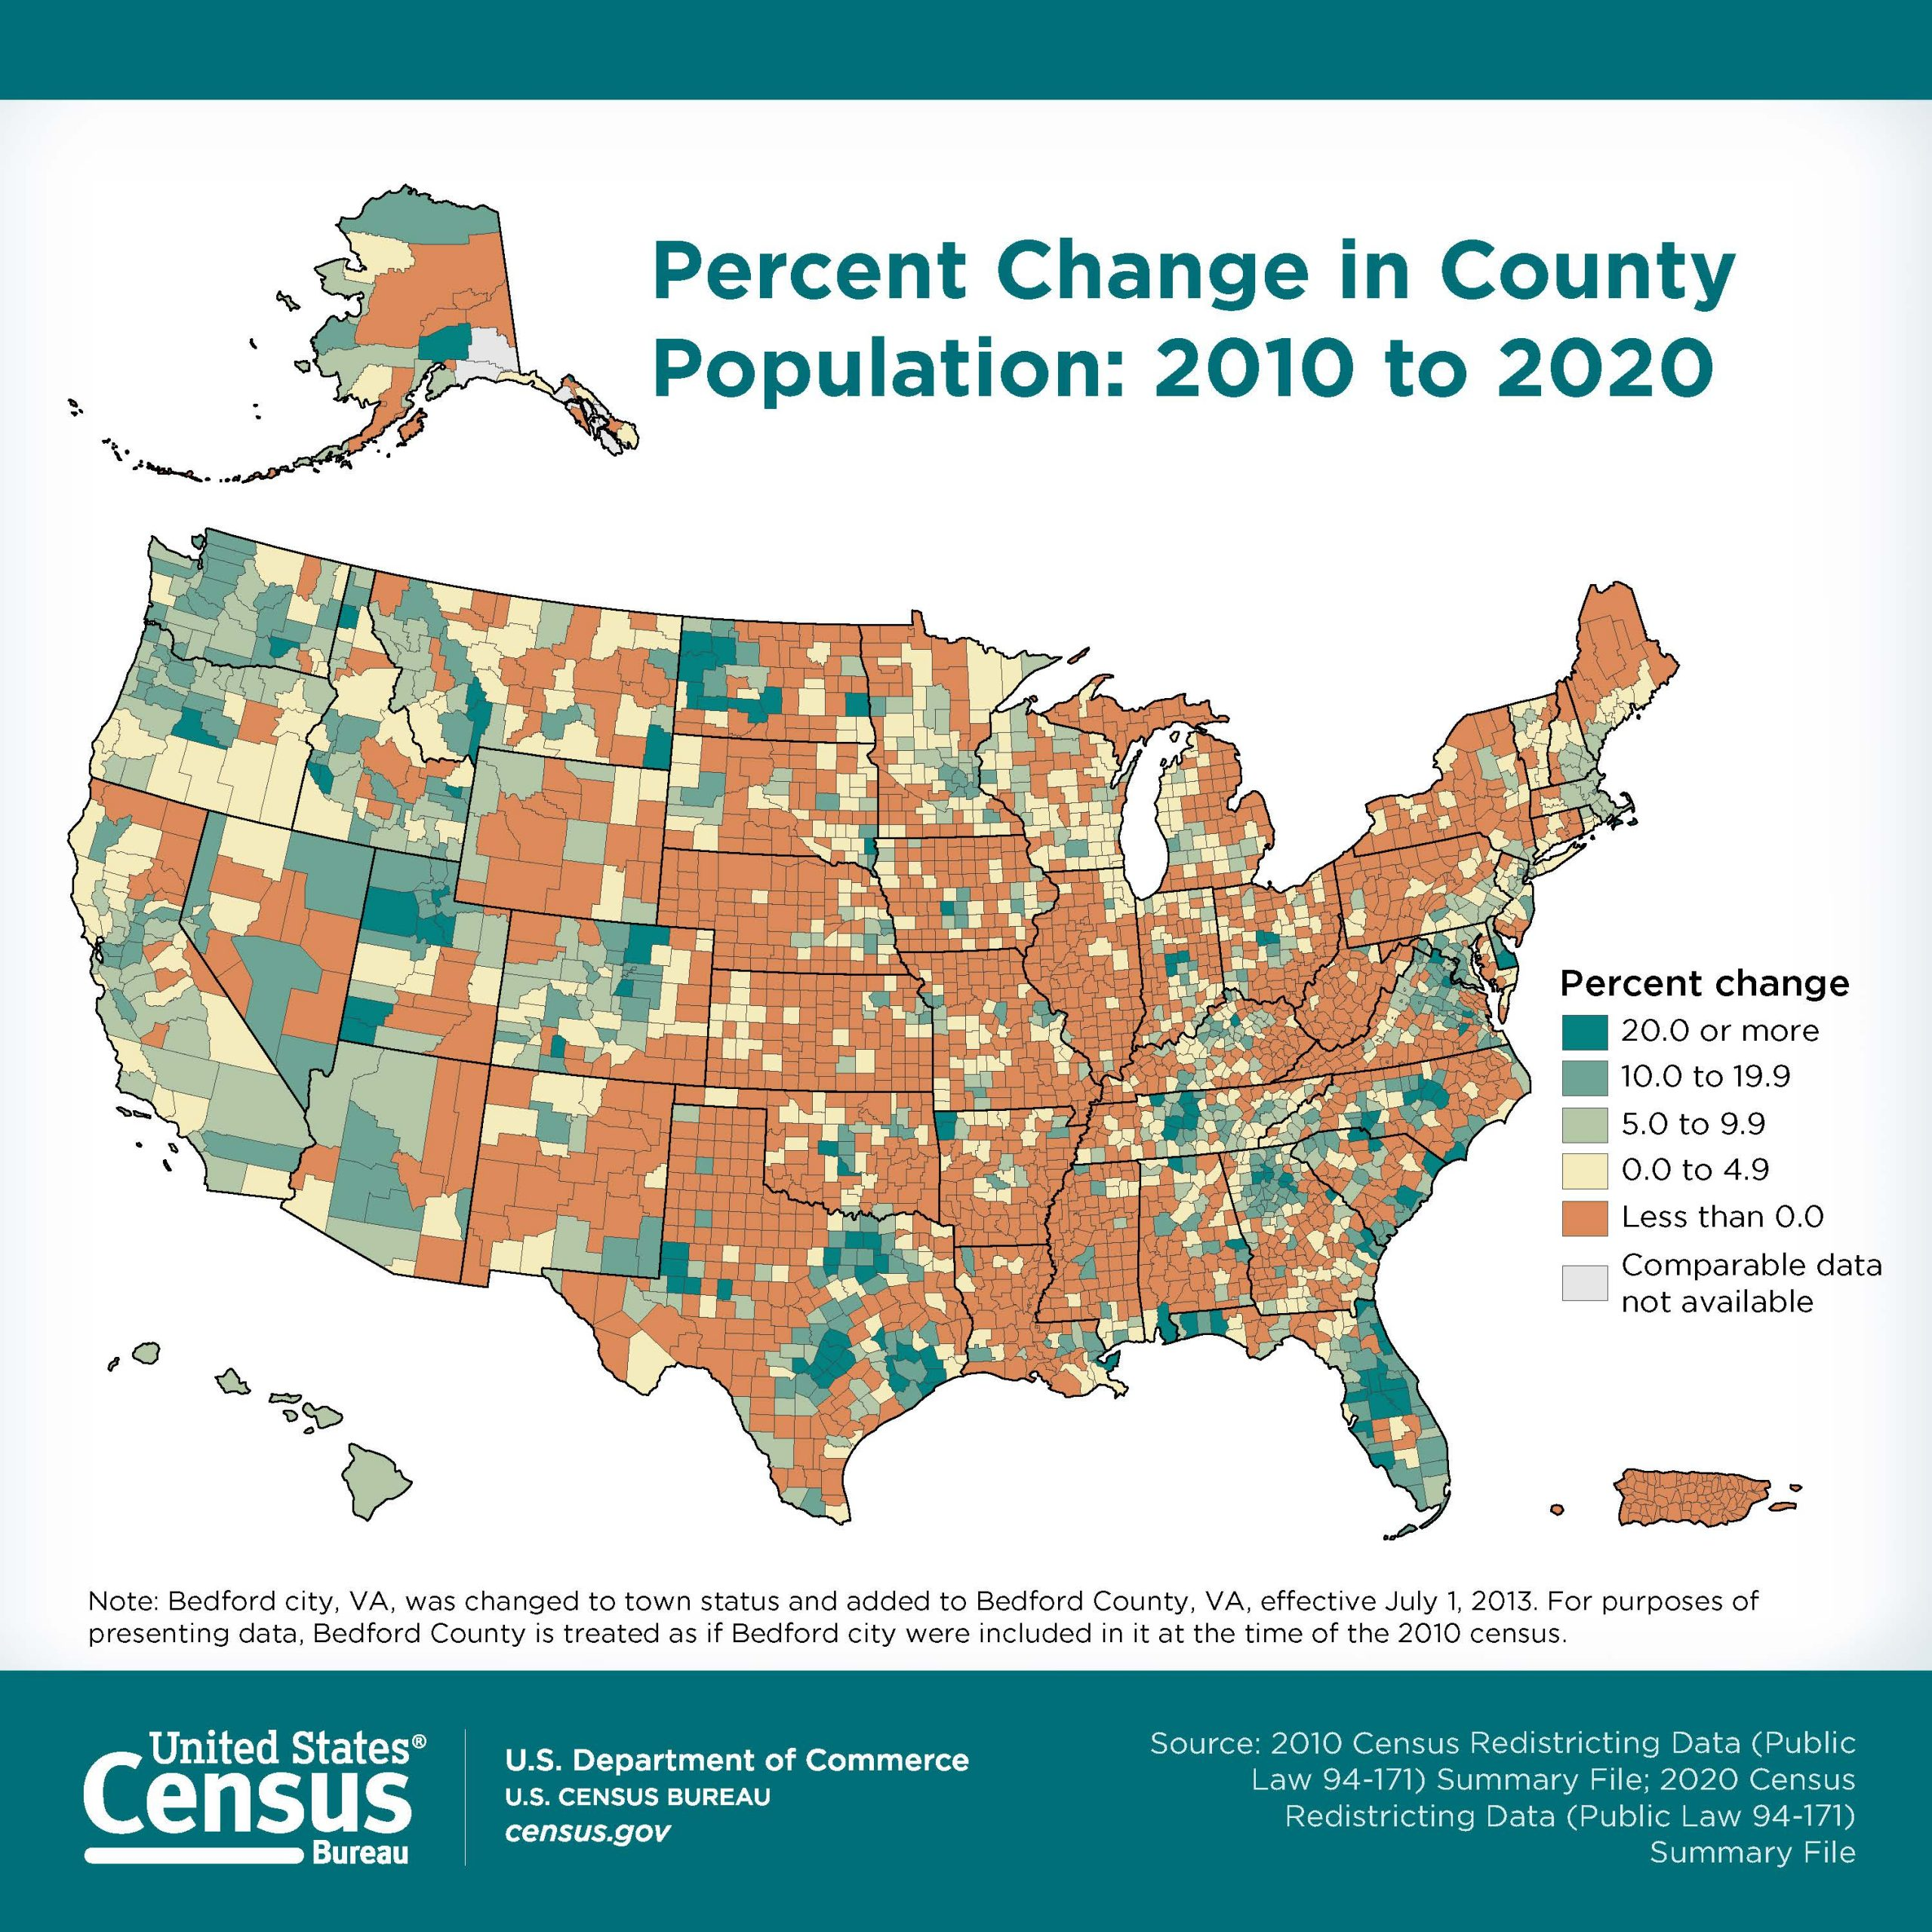 Map of the United States showing the percent change in county population from 2010 to 2020